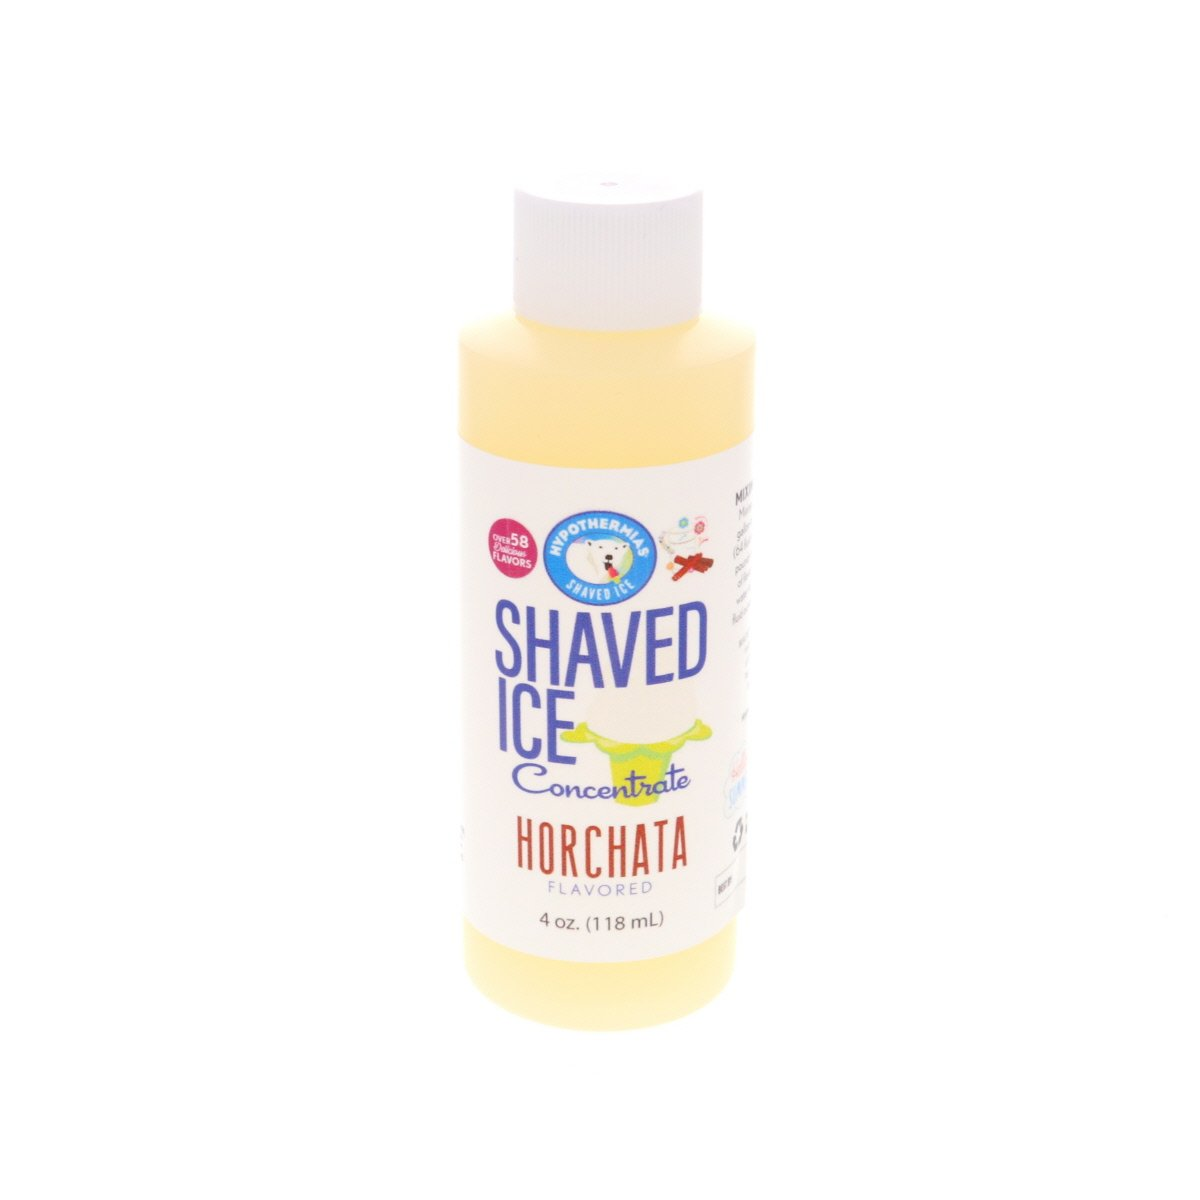 Shaved ice flavor concentrate horchata syrup 4 Fl Oz